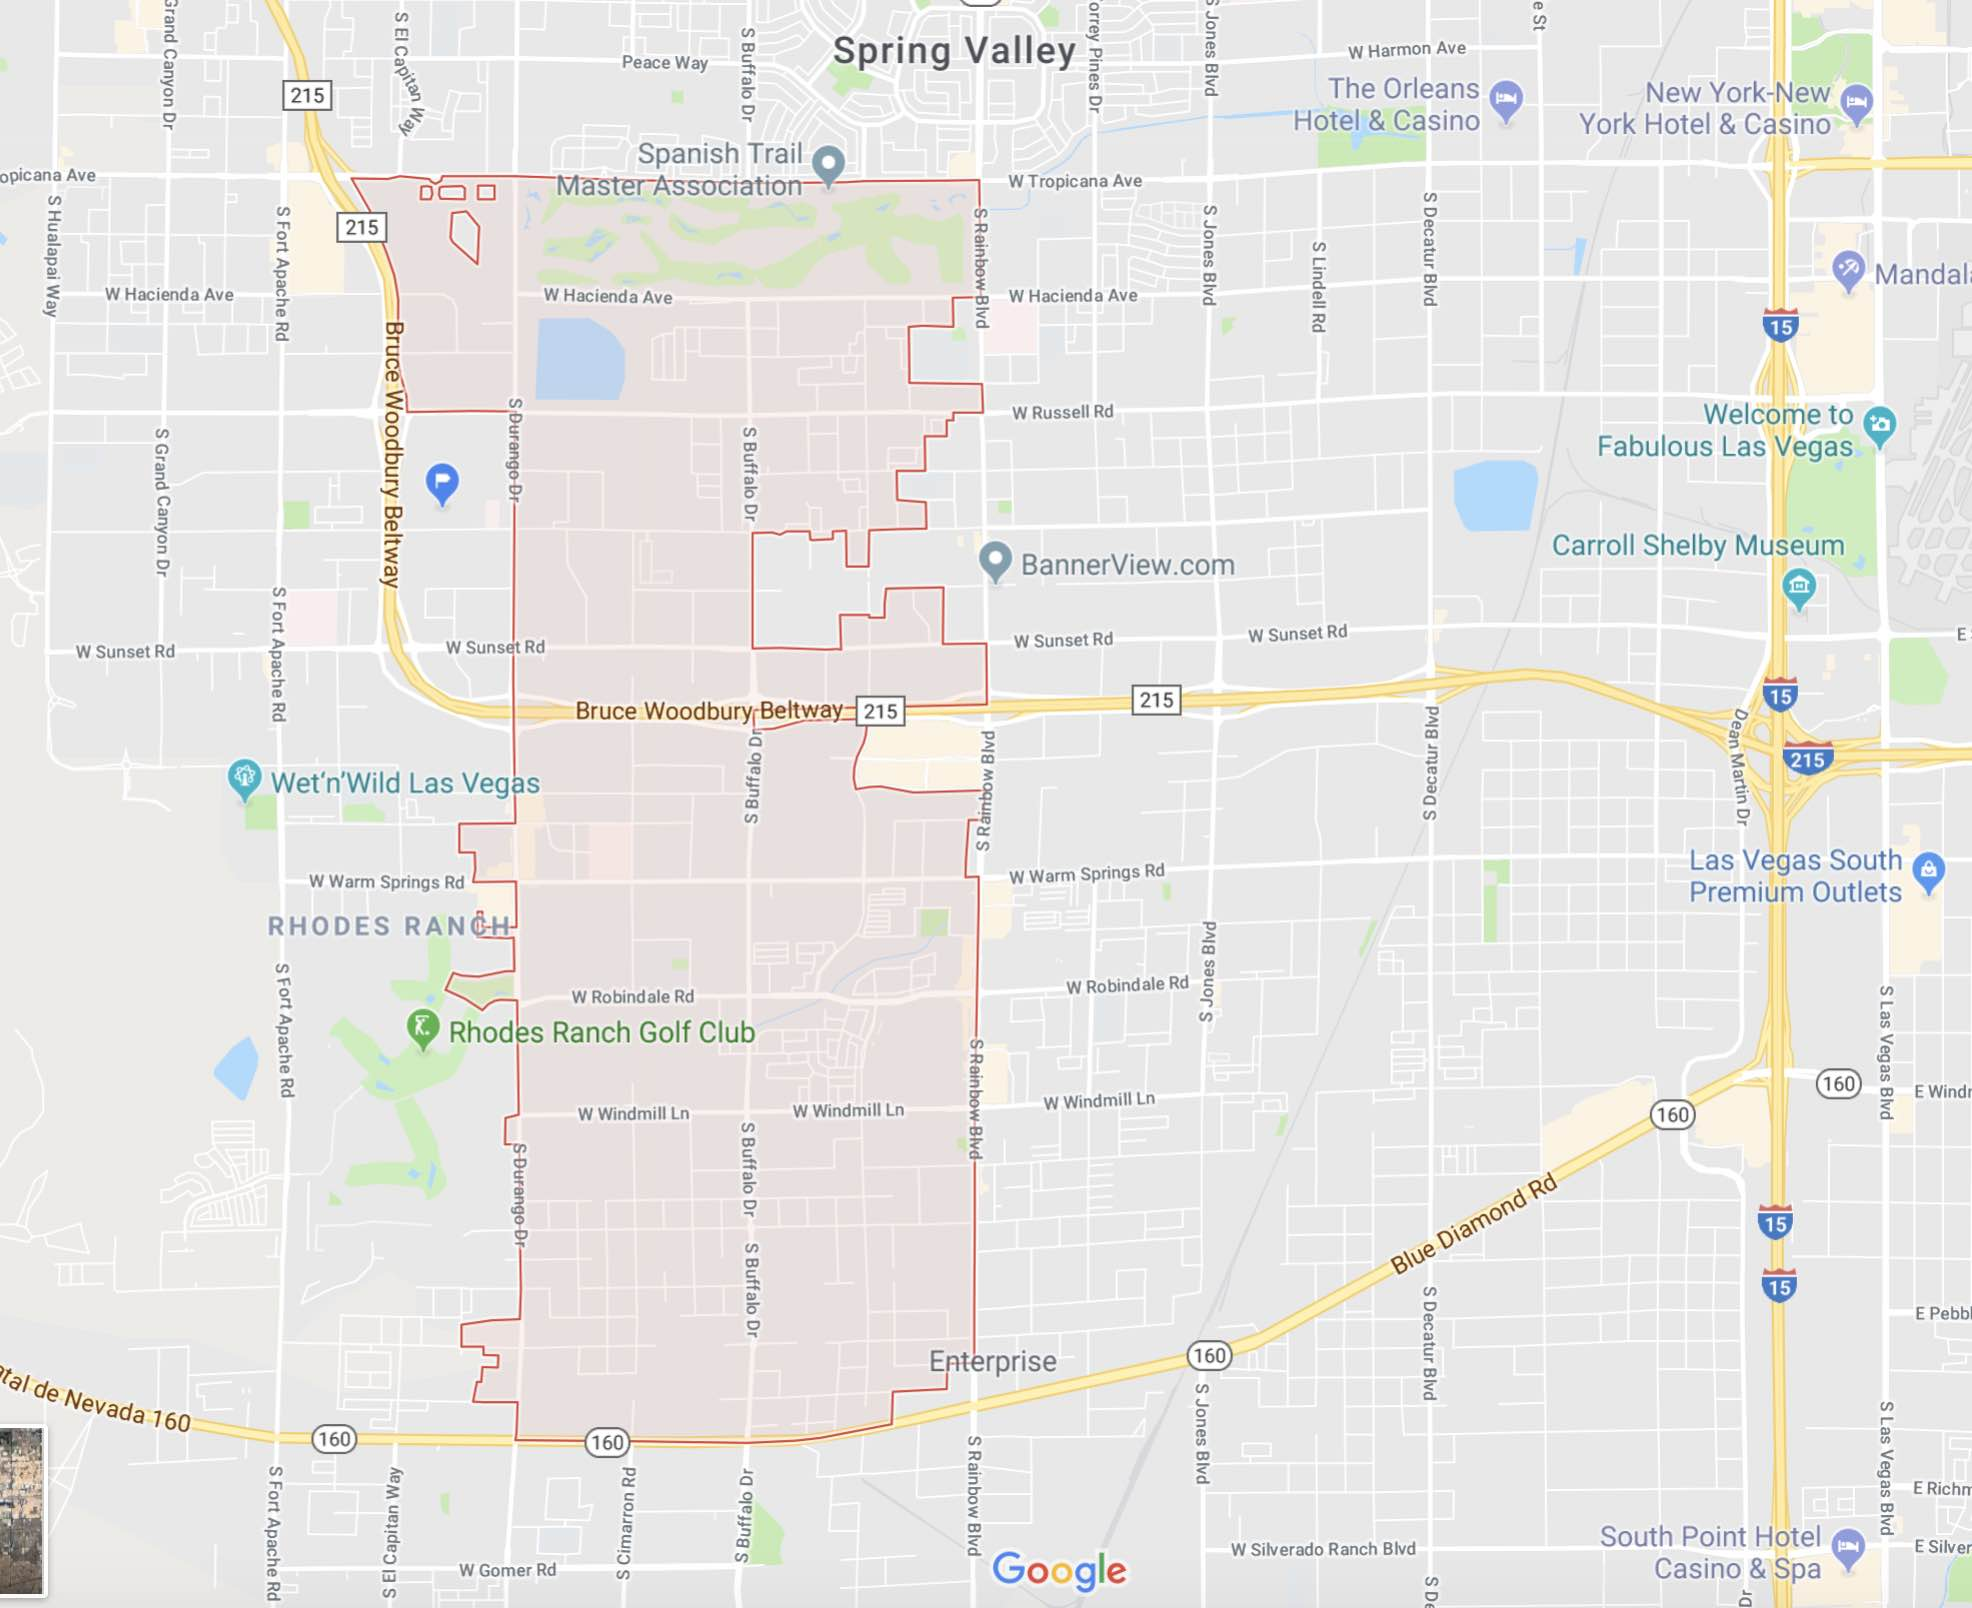 Google Map showing the boundaries of Southwest Las Vegas Zip Code 89113